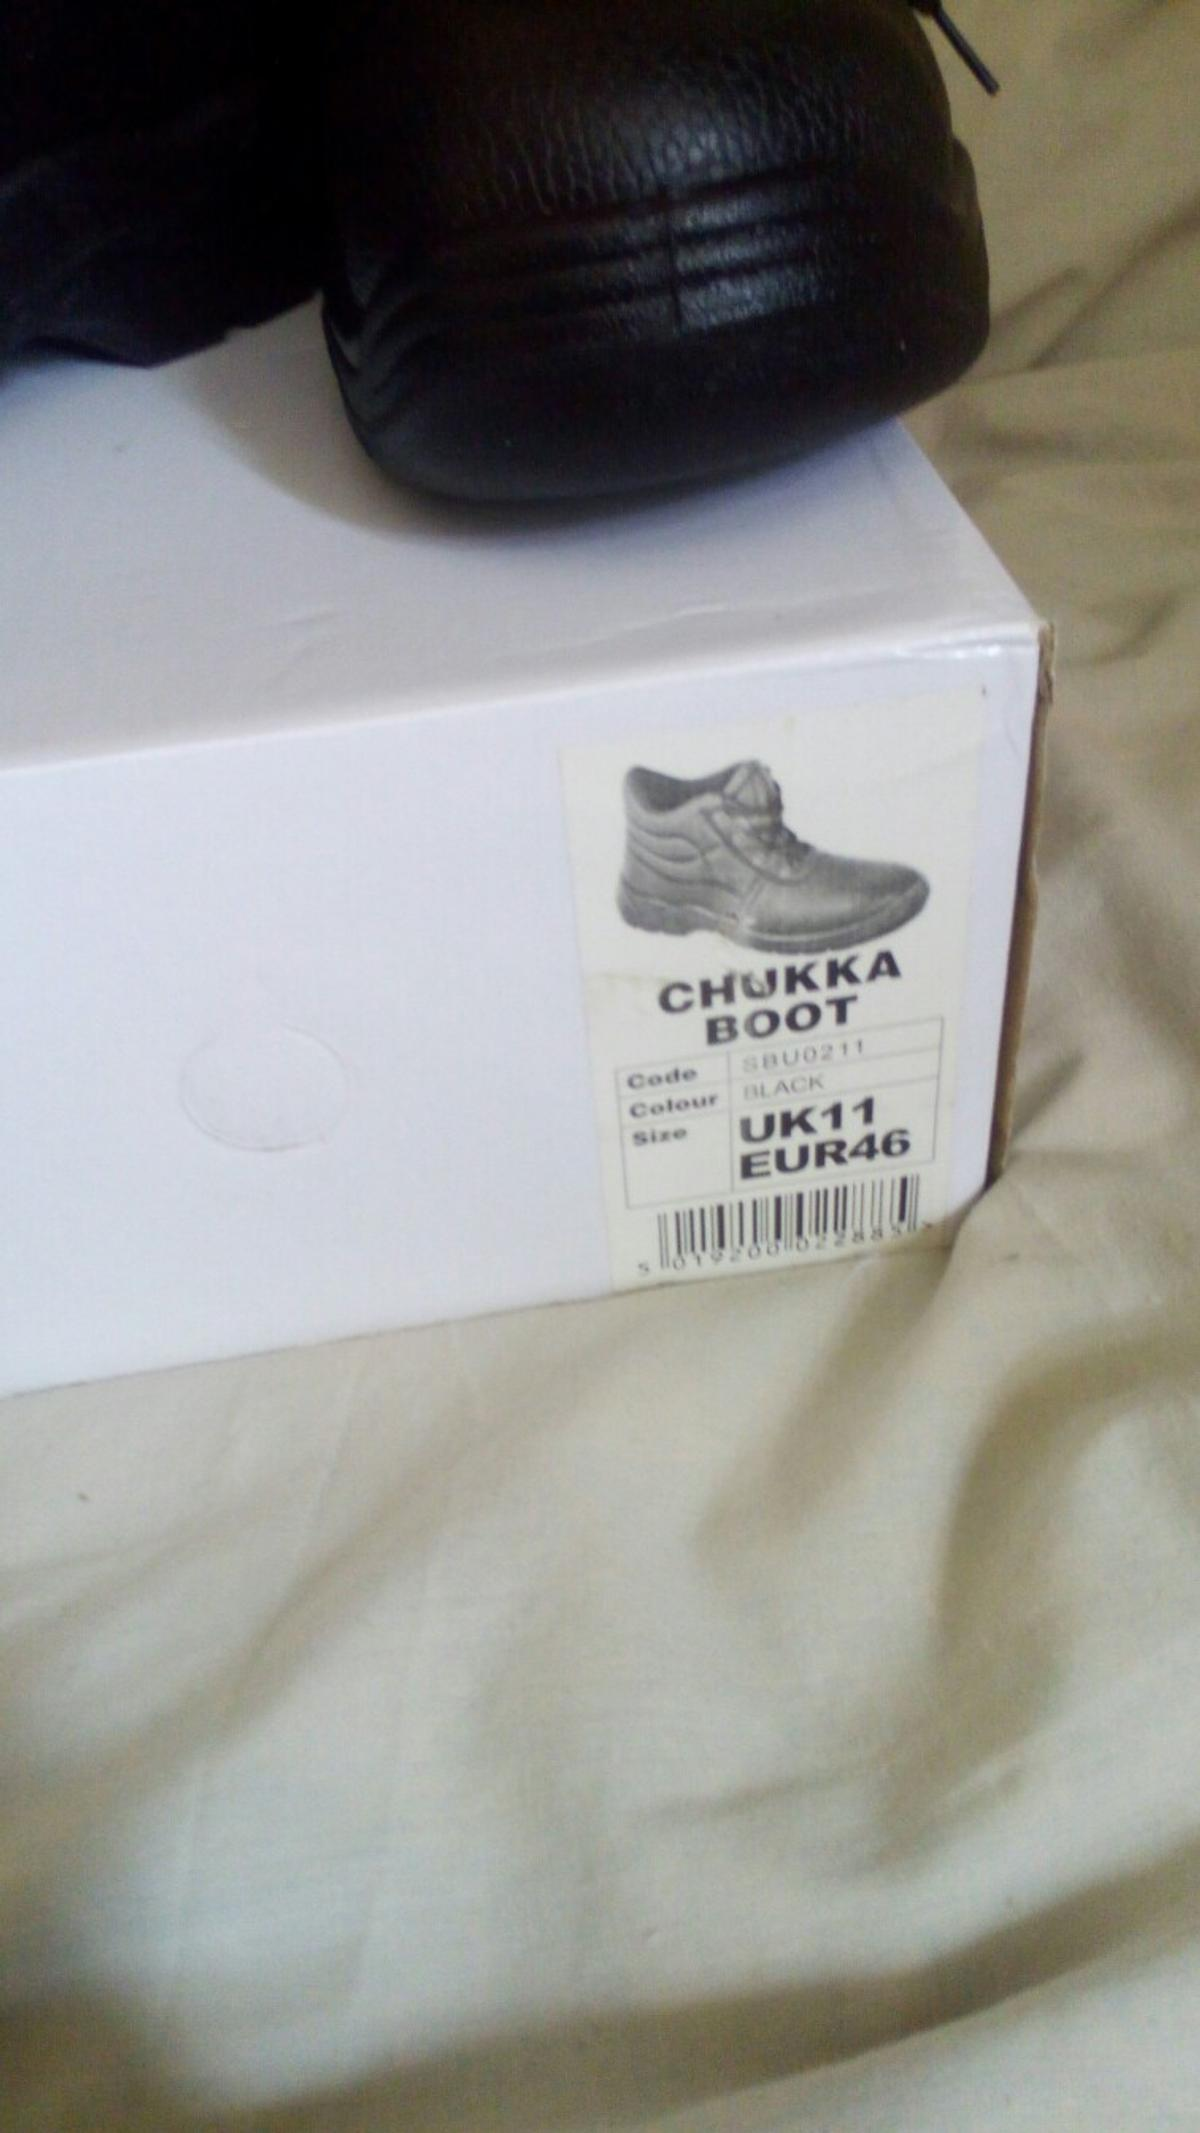 only collection brand new size 11 chukka black boots for 15 pound